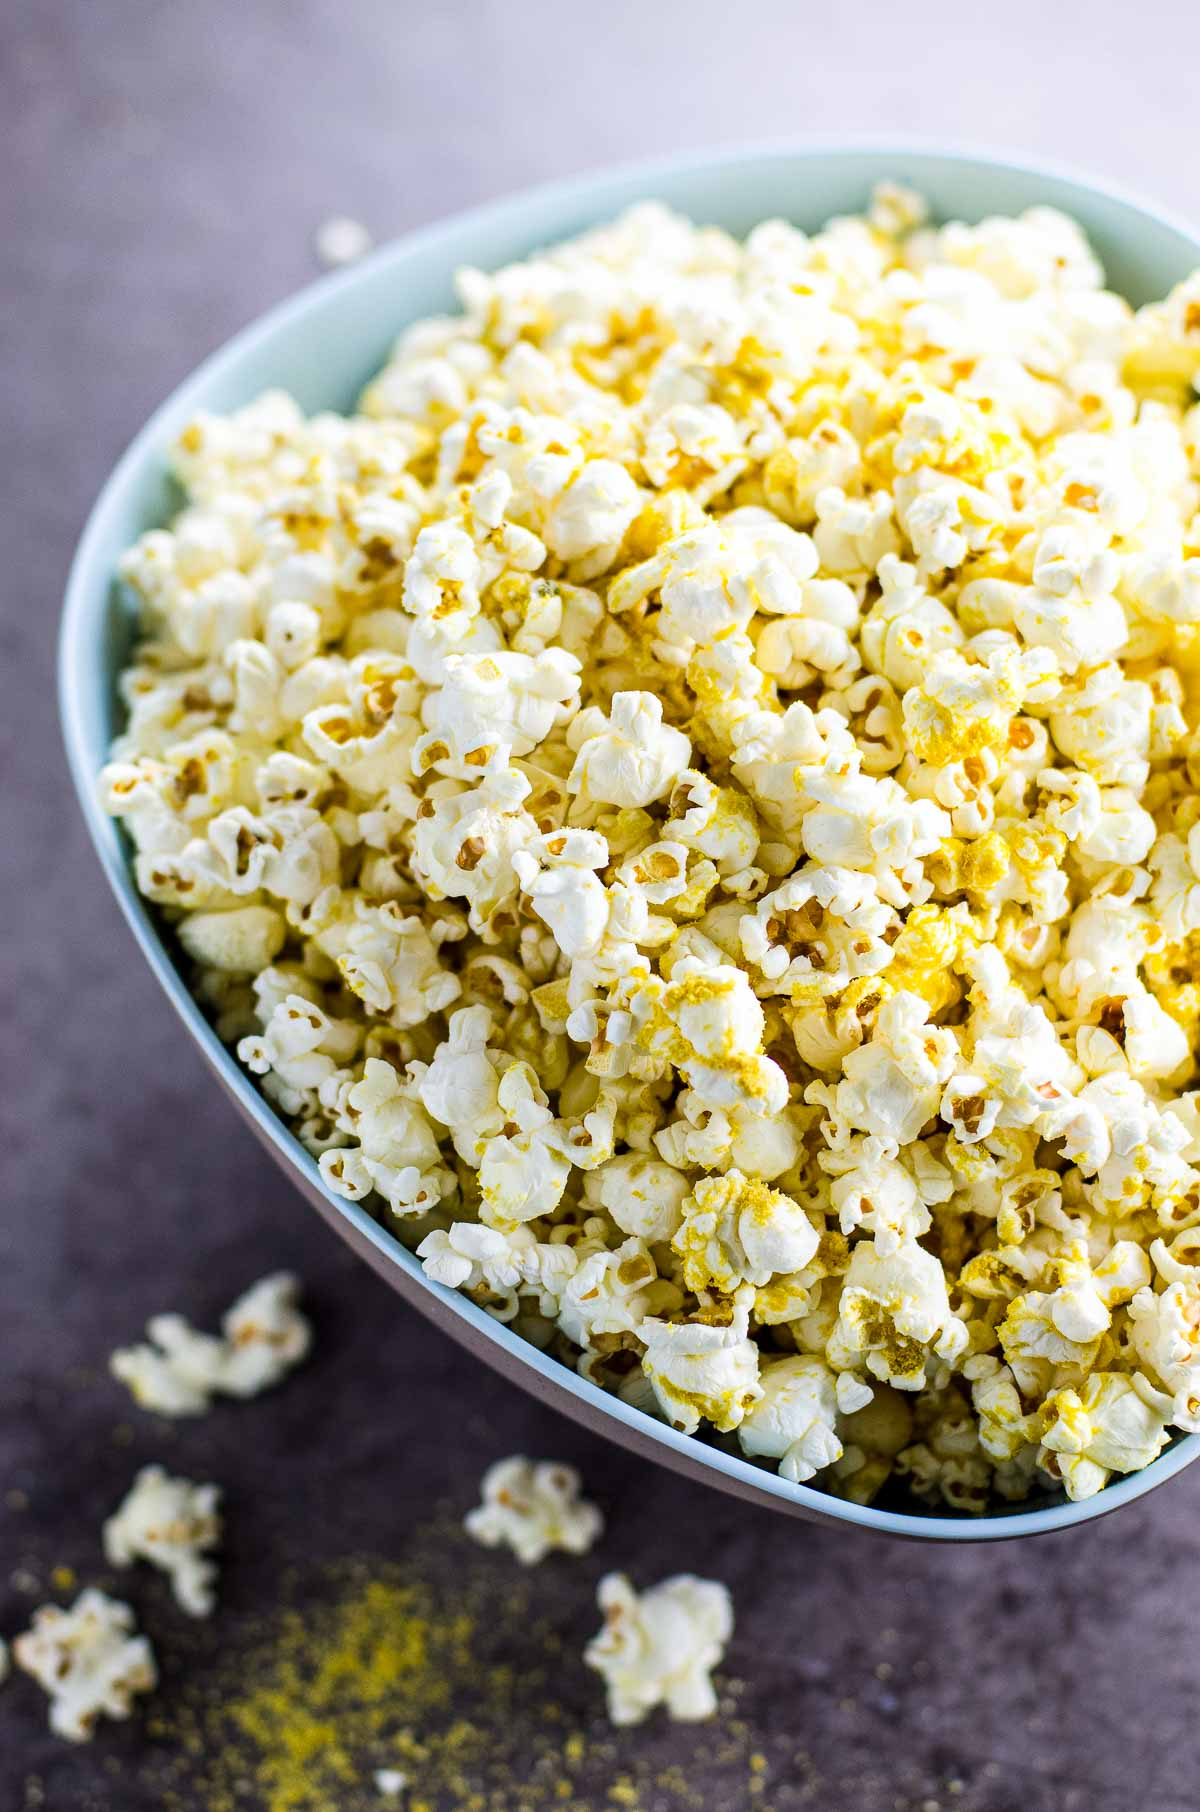 popcorn with nutritional yeast in a blue bowl